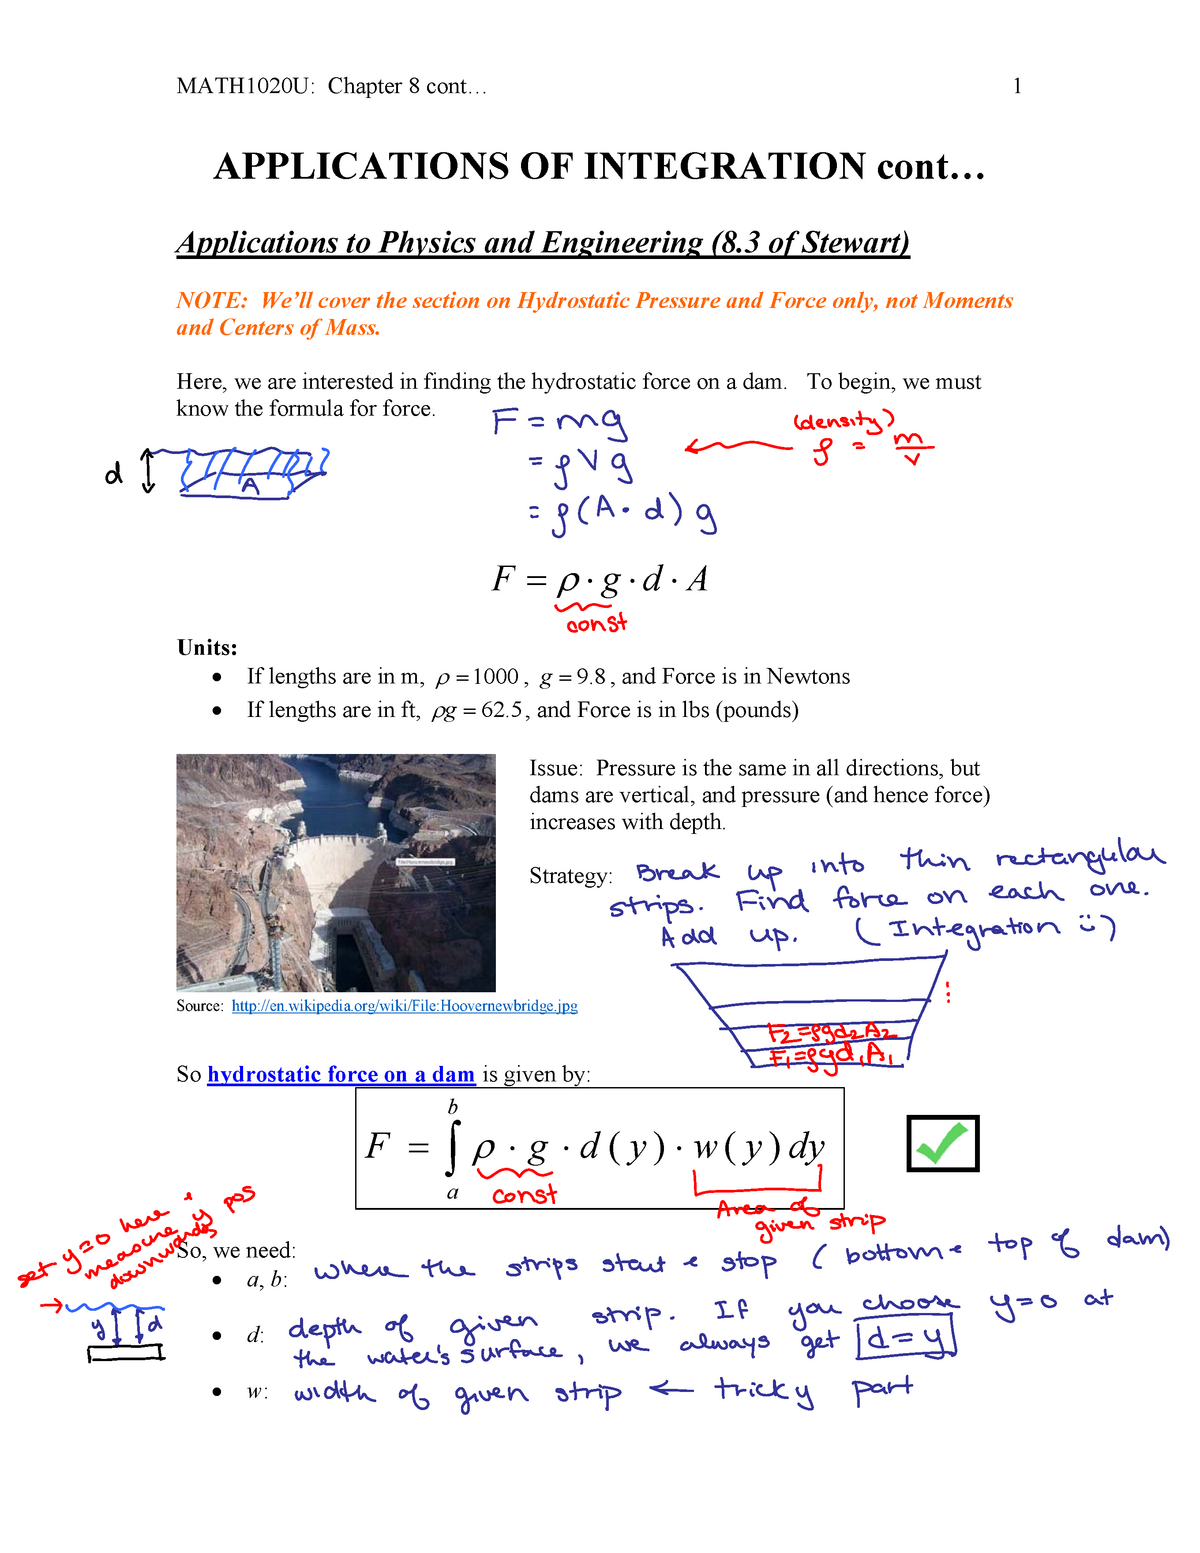 Mod4b physbioprob - Please give as much additional